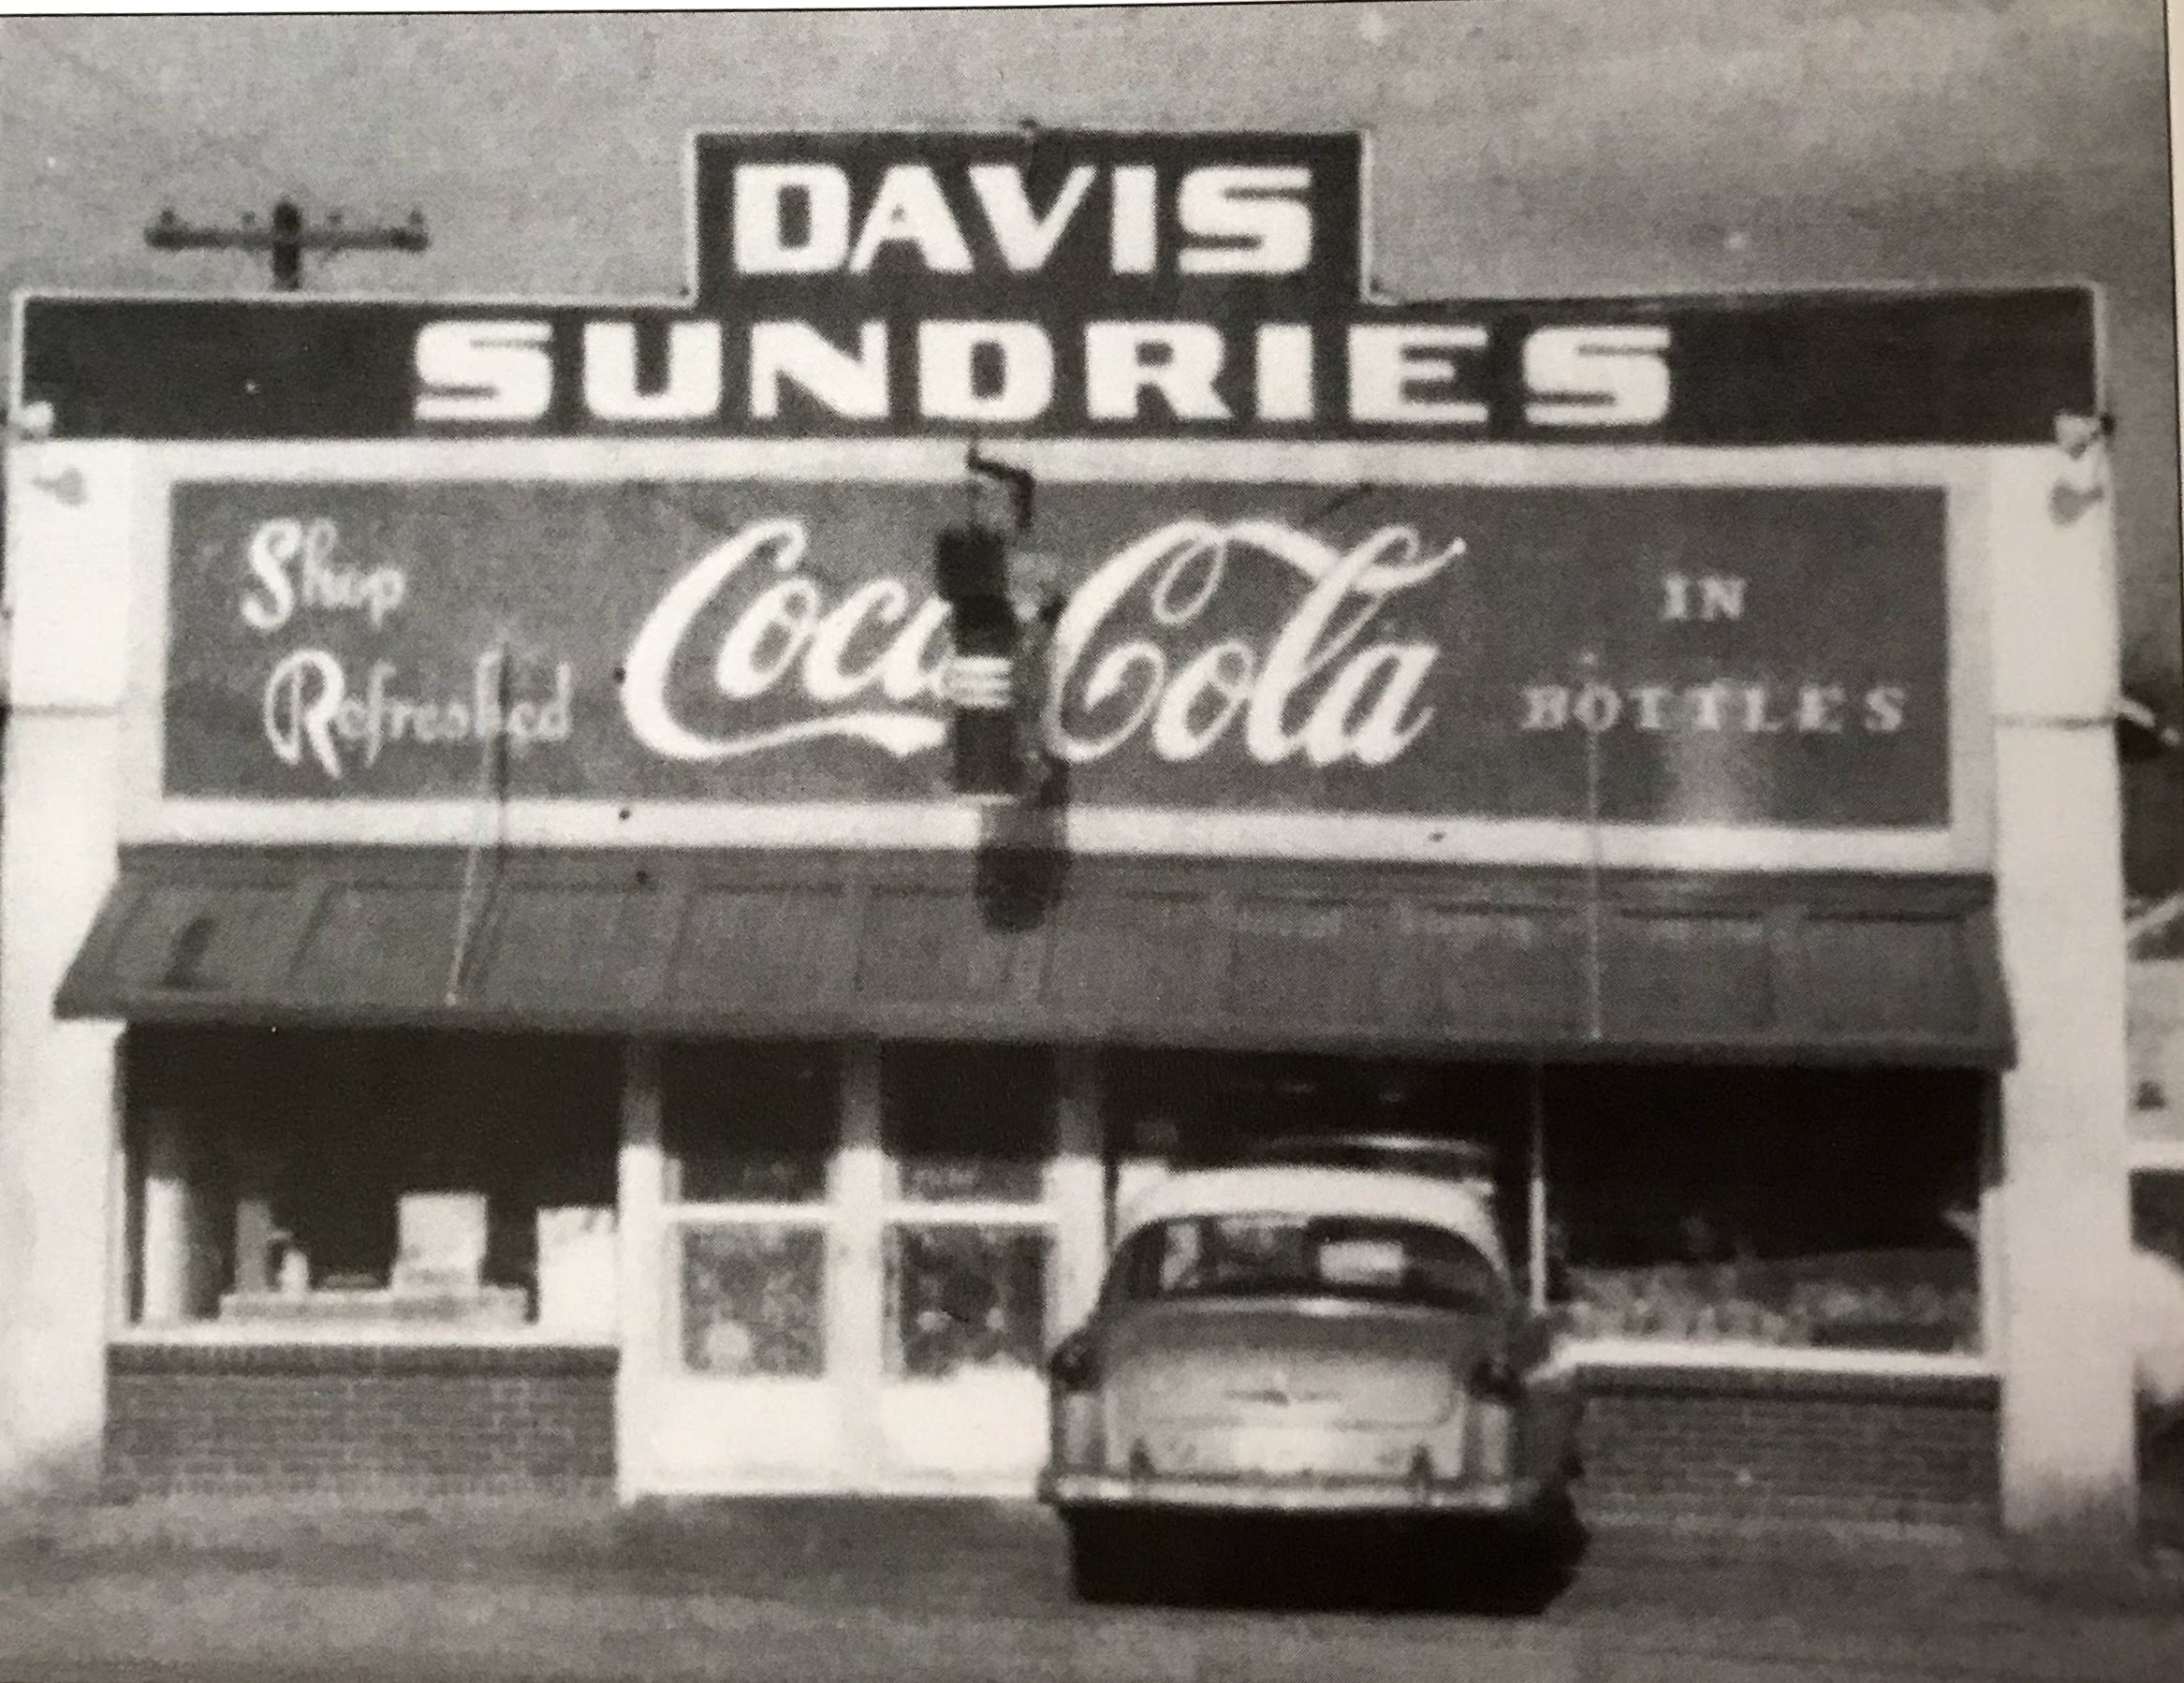 Davis Sundries shown around 1965 later purchased by Glenn Birdwell